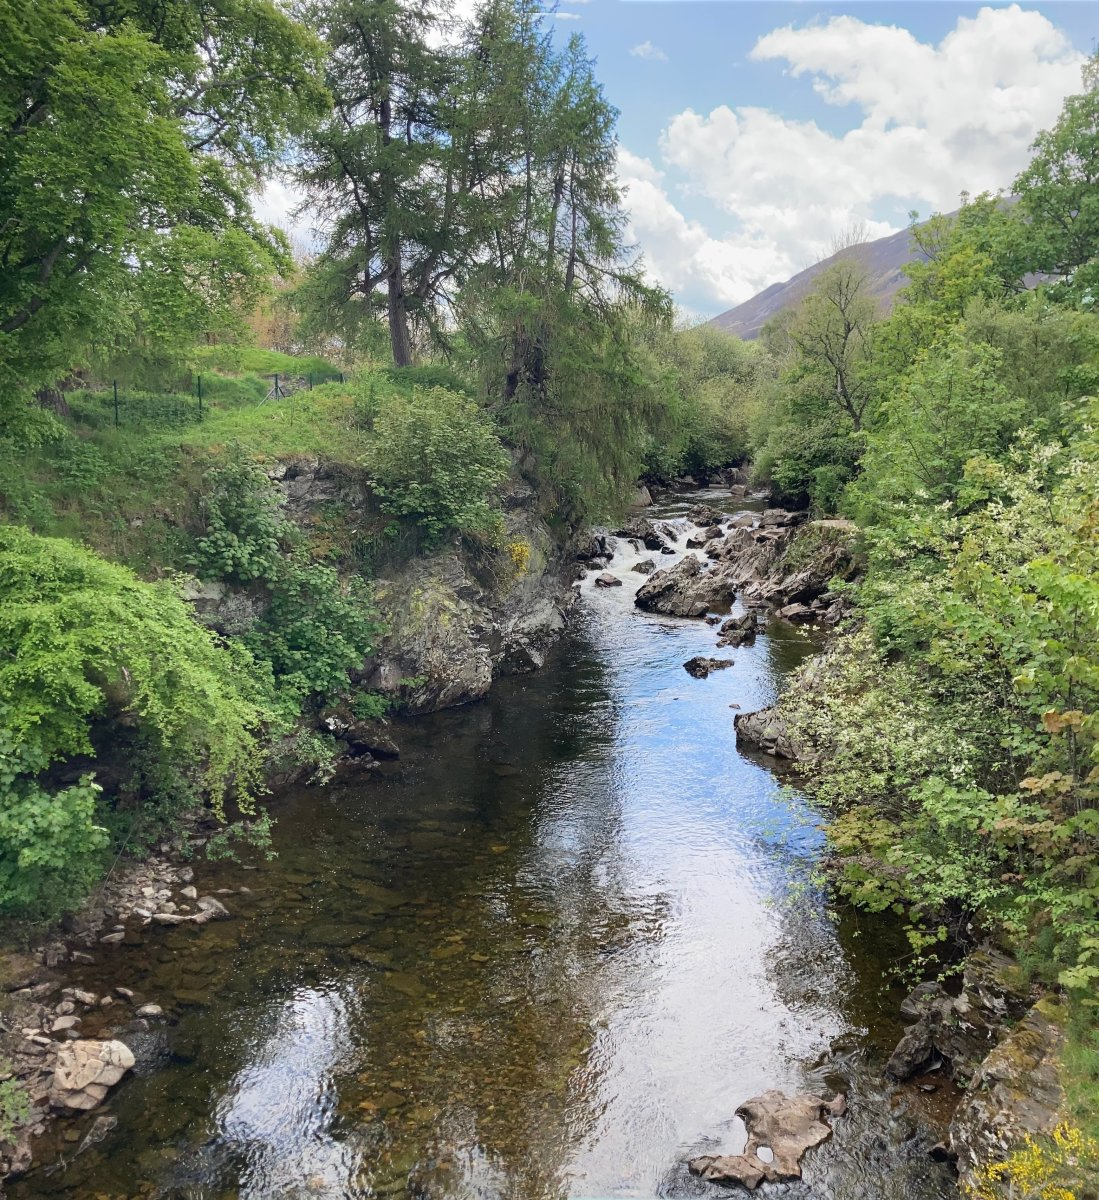 A Spectacular Road Trip Through Royal Deeside in Scotland, Favourite Holiday Destination of the British Royal Family